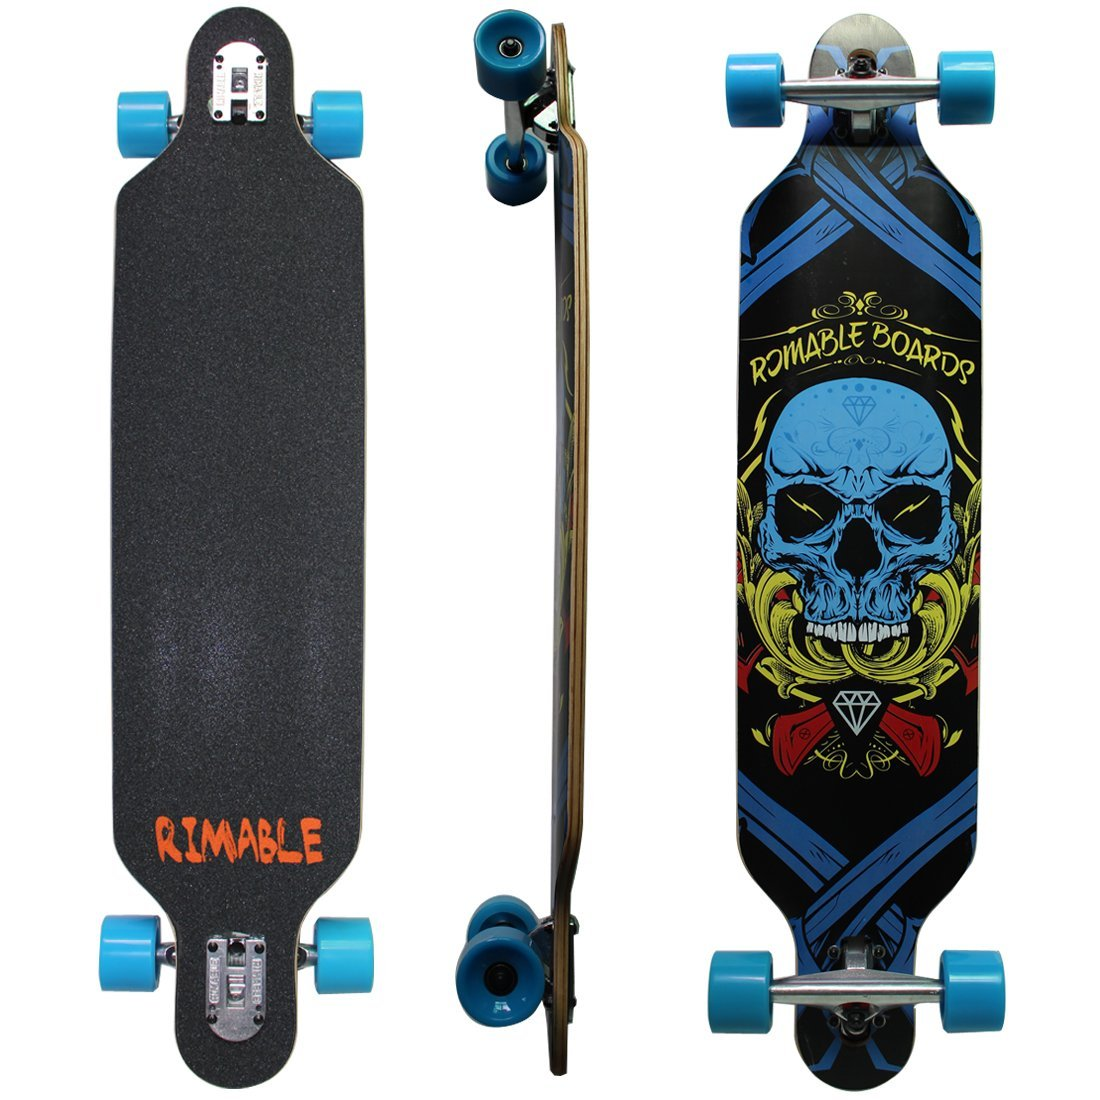 Rimable Free-riding Drop-Through Longboard